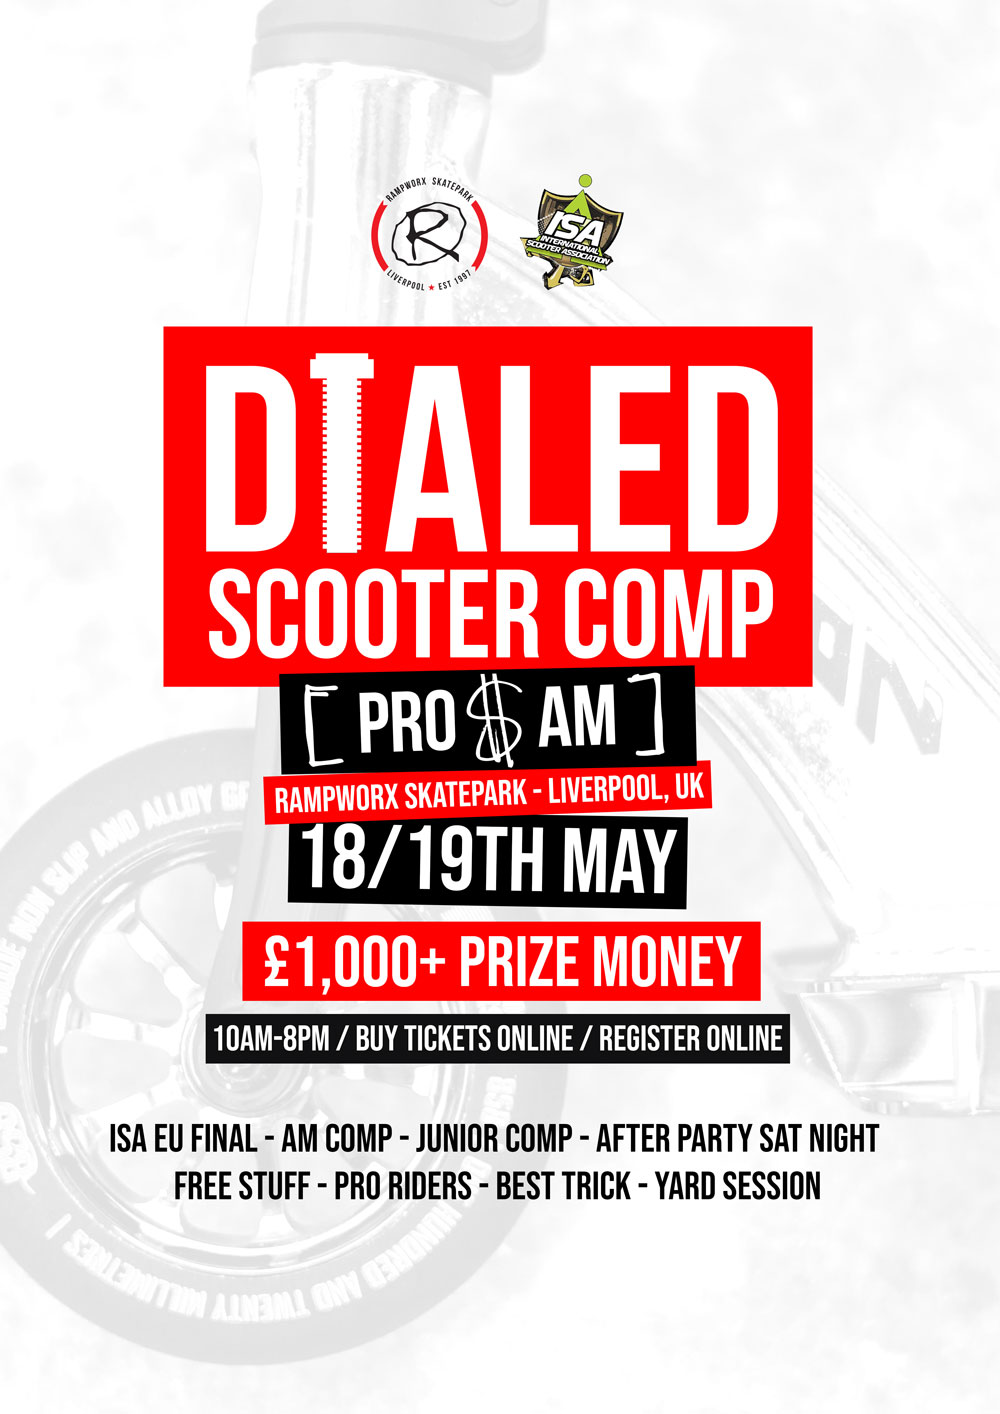 DIALED Scooter Comp - ISA EU Final 2019